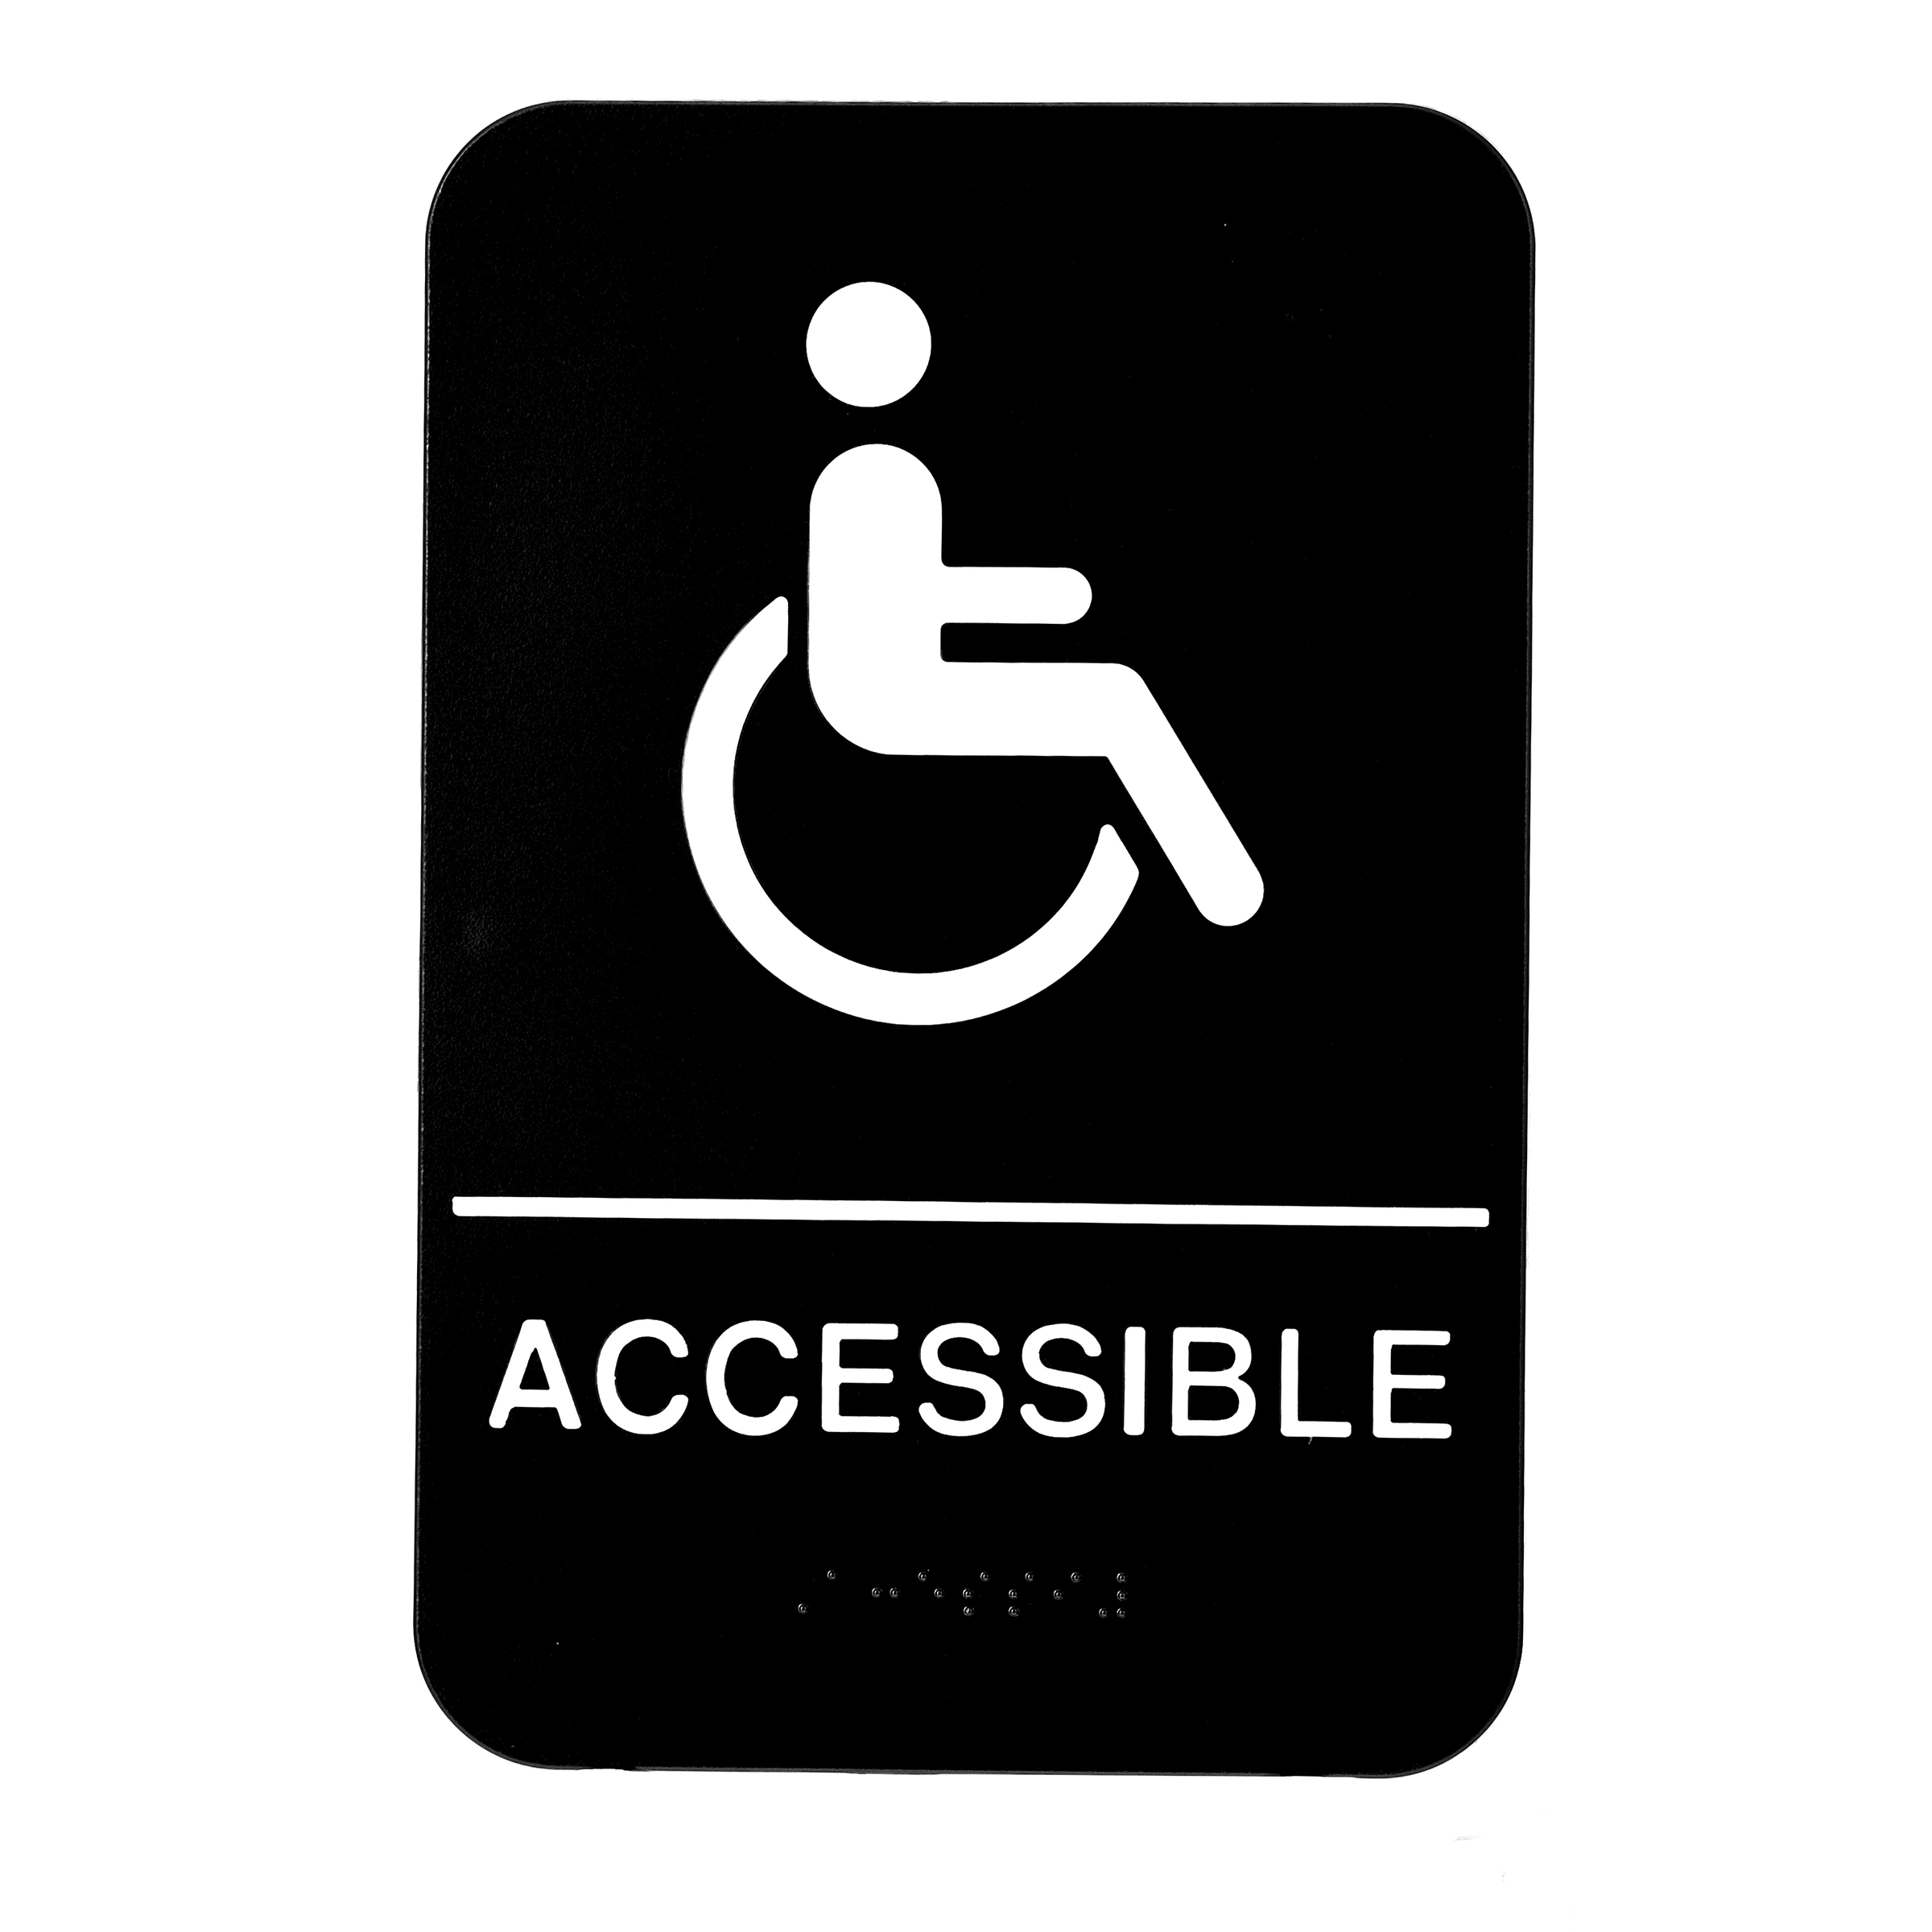 Alpine Industries ADA Handicap Accessible Sign with Braille, Black/White, ADA Compliant, 6x9